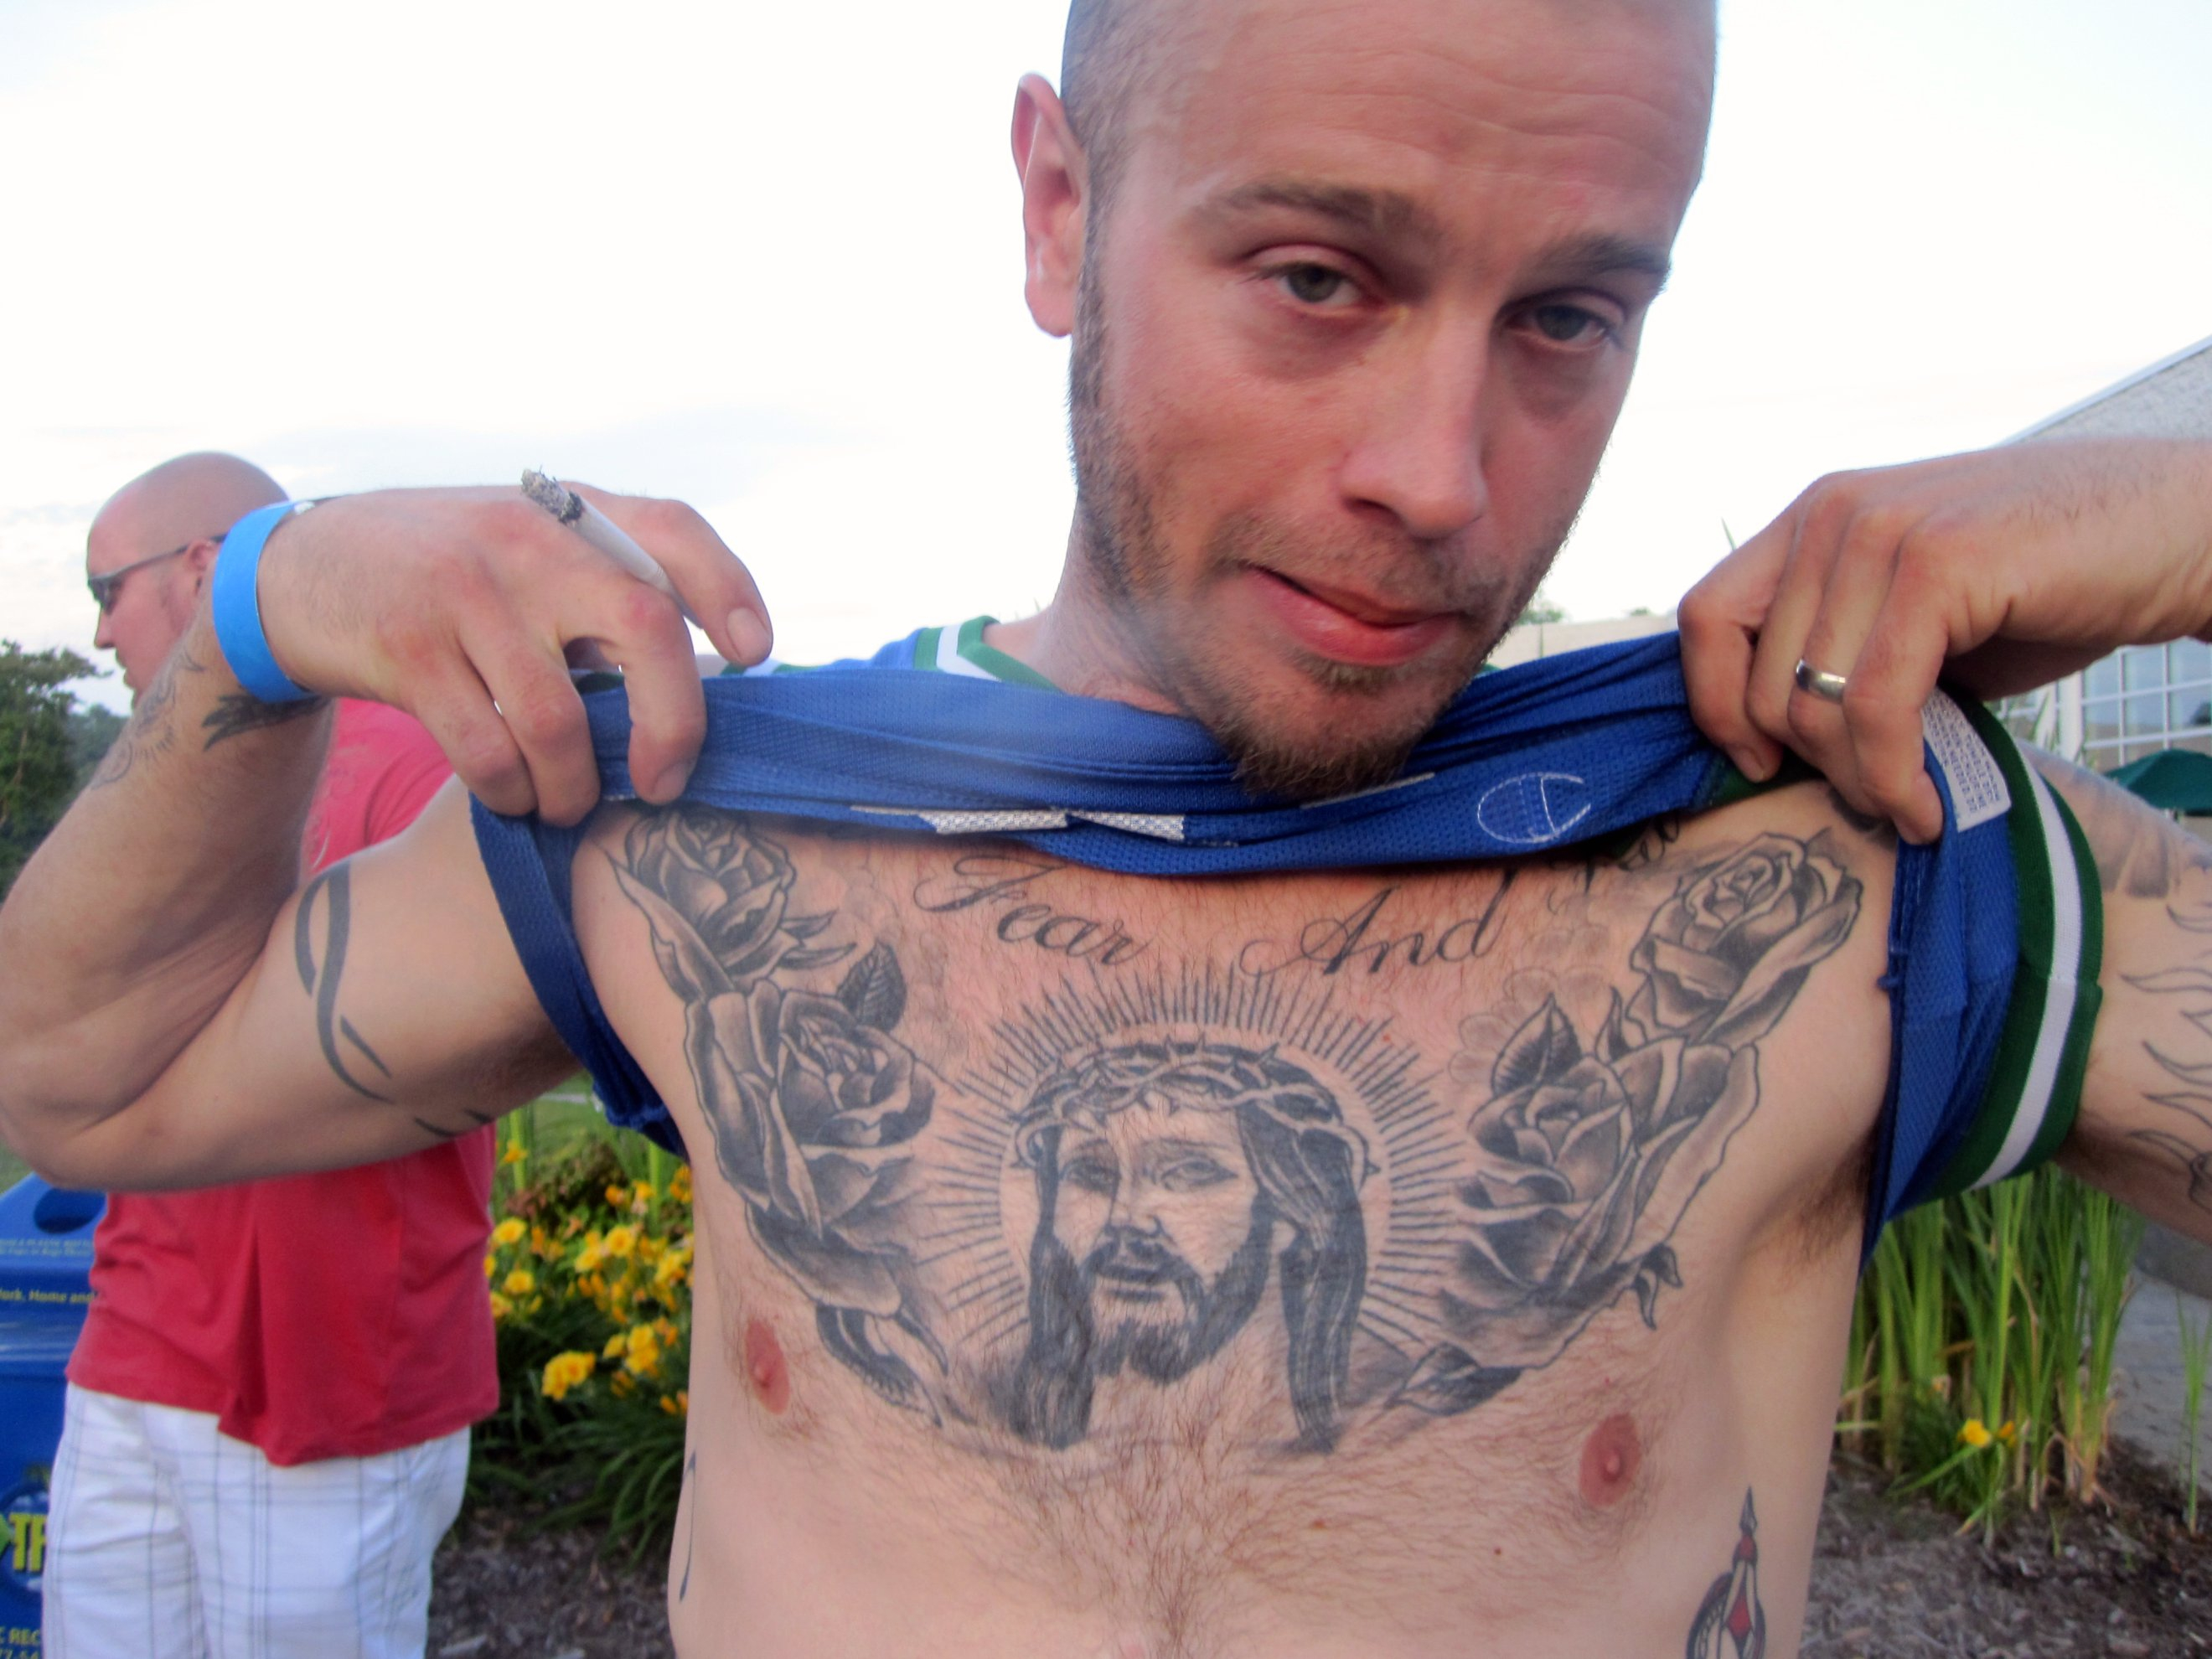 Integratr Body Tattoo Ideas Jesus Chest regarding sizing 2640 X 1980